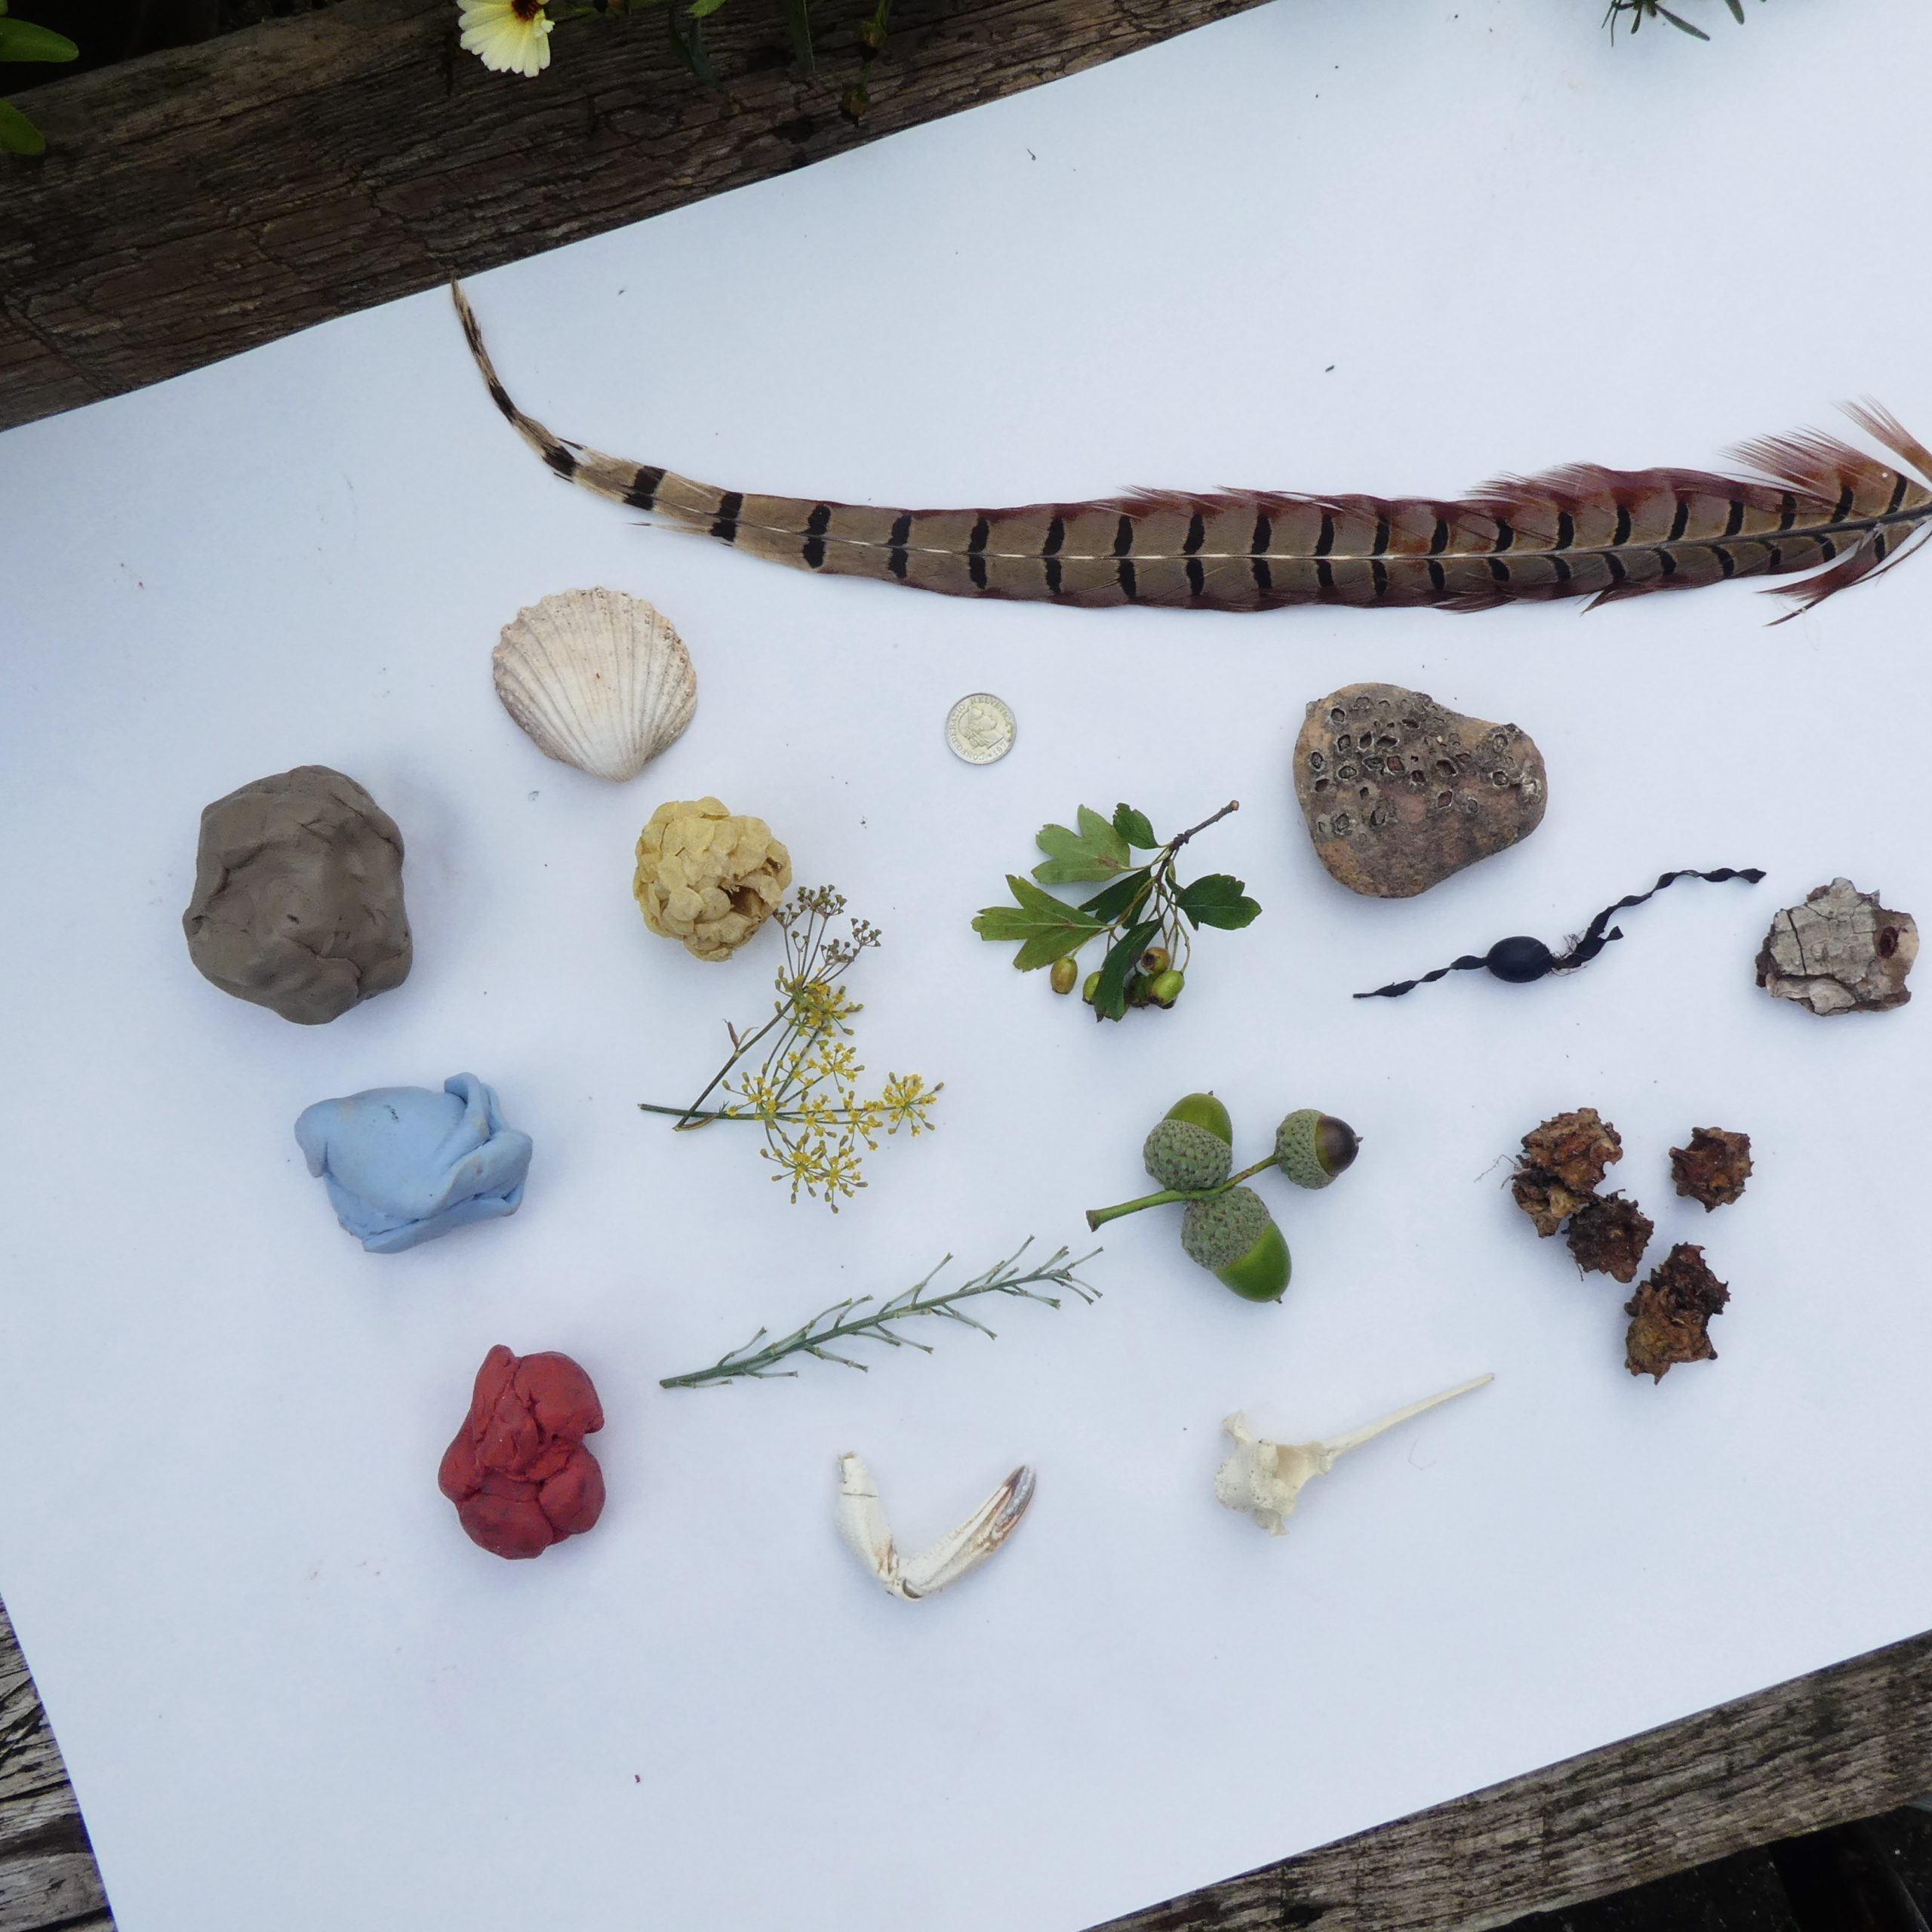 A collection of blutack, seed heads and feathers